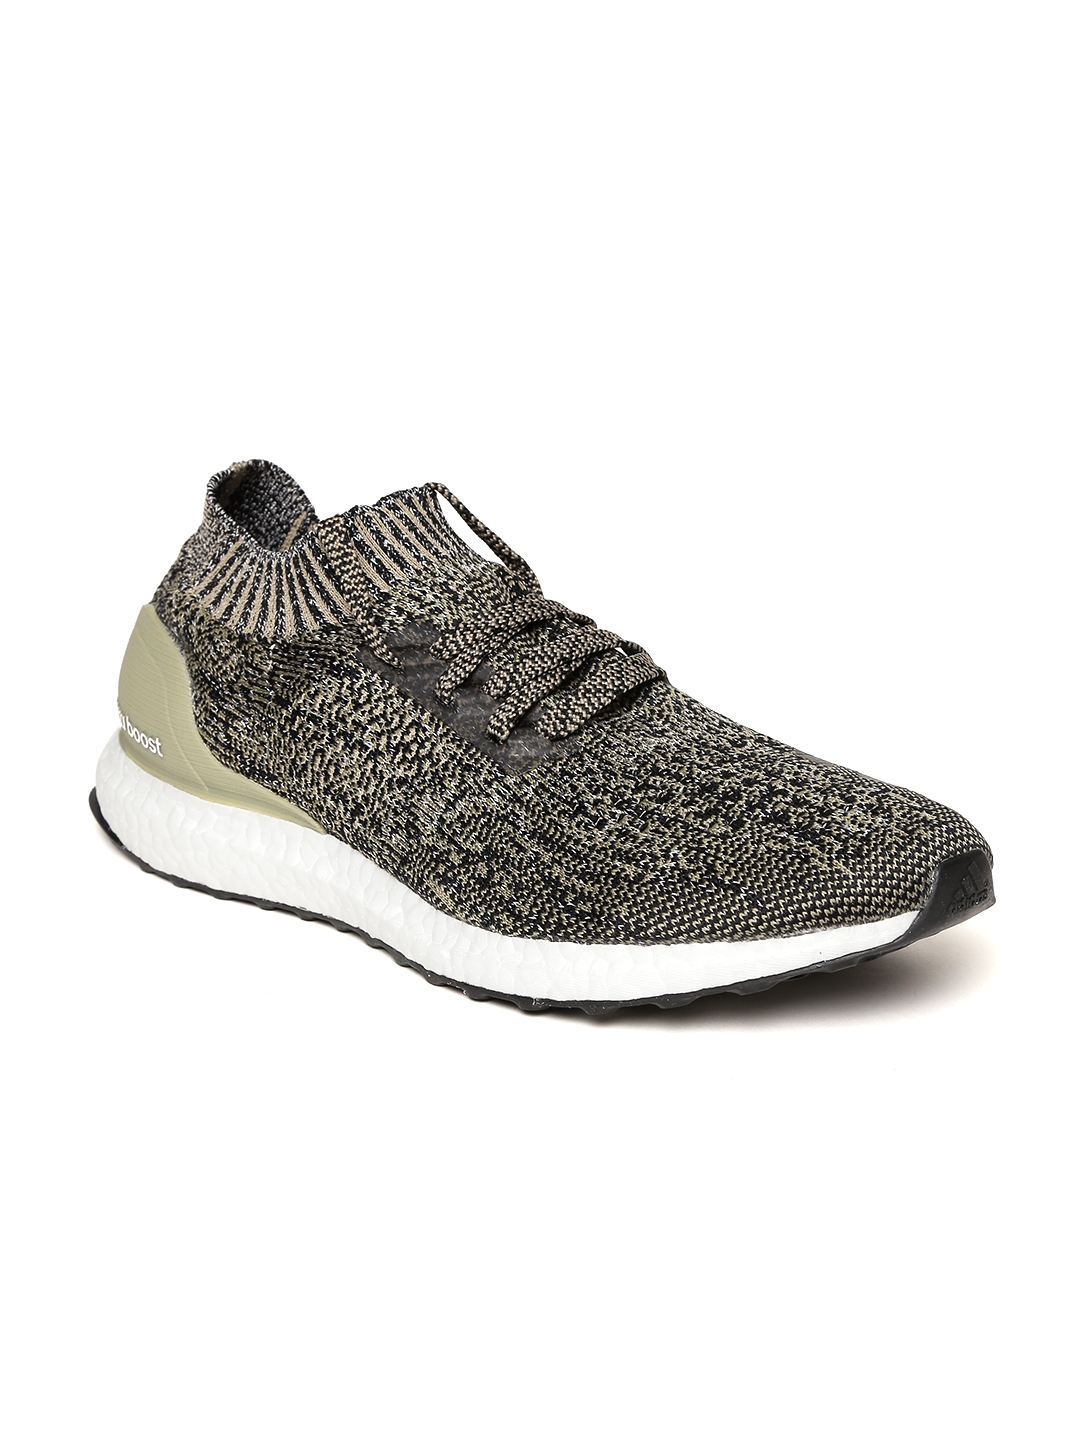 0cdffacece18 Buy ADIDAS Men Olive Green Ultraboost Uncaged Patterned Running ...